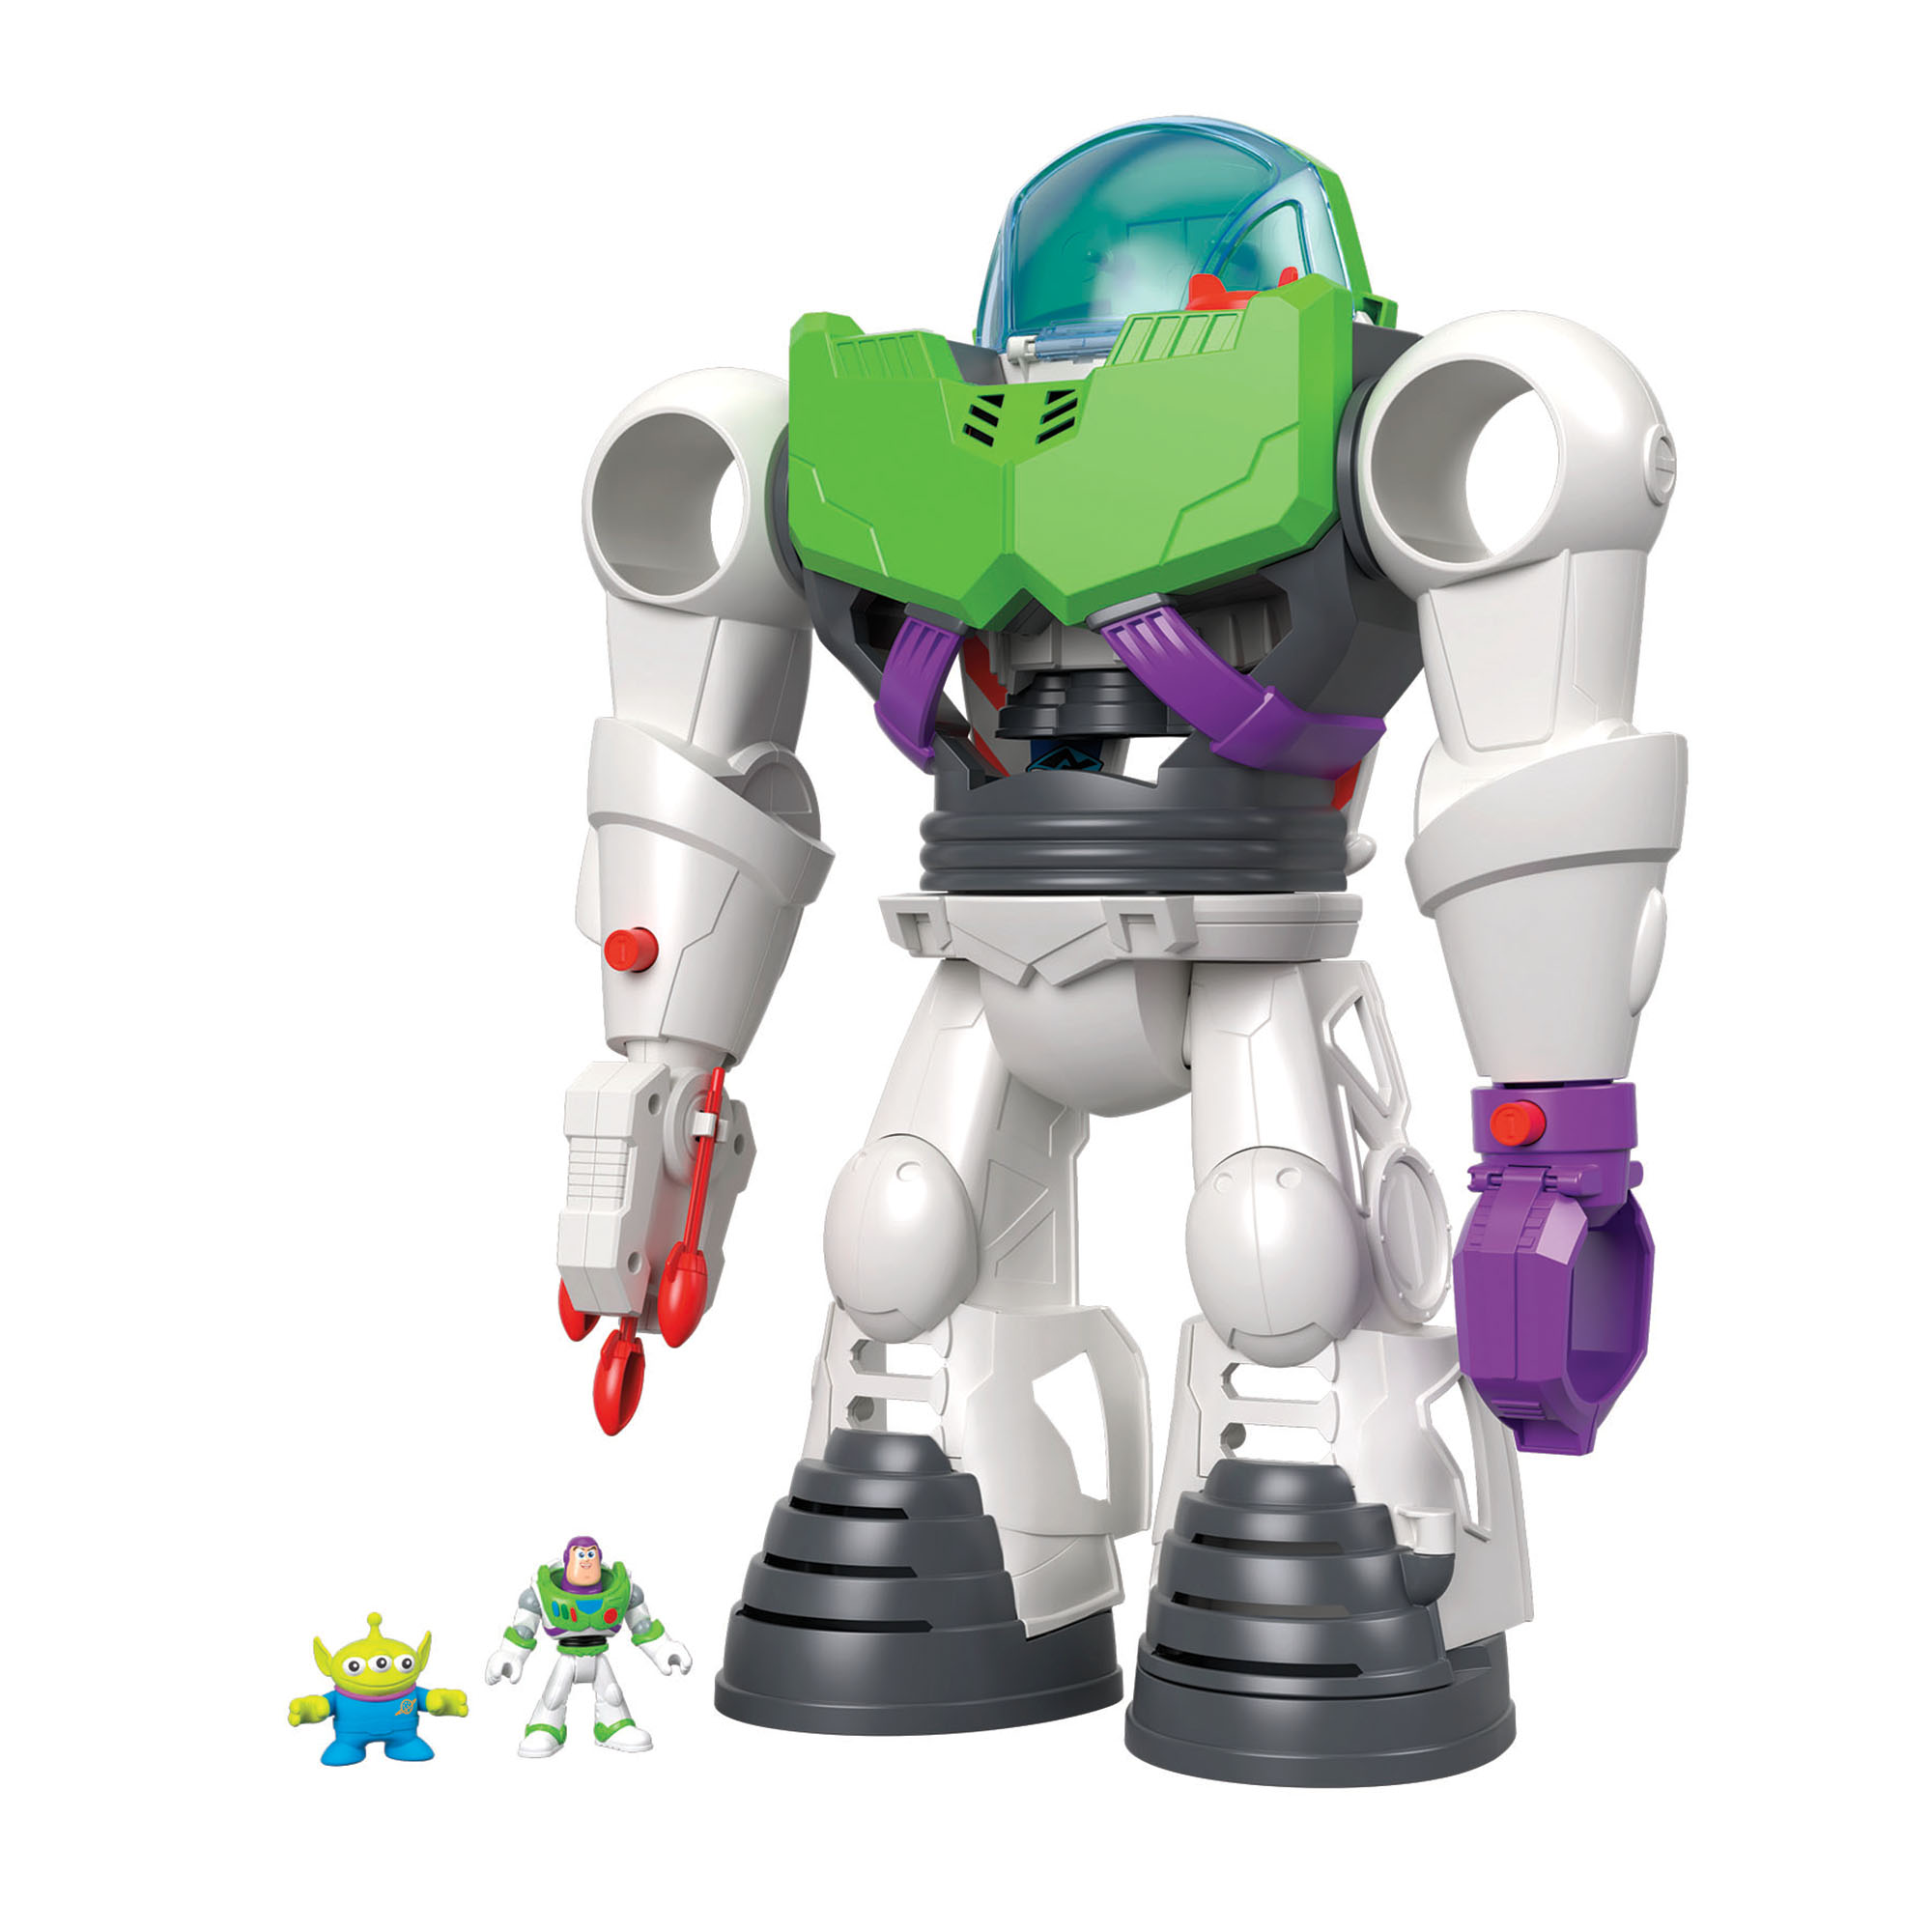 Picture of Imaginext Toy Story 4 Buzz Lightyear Robot Playset